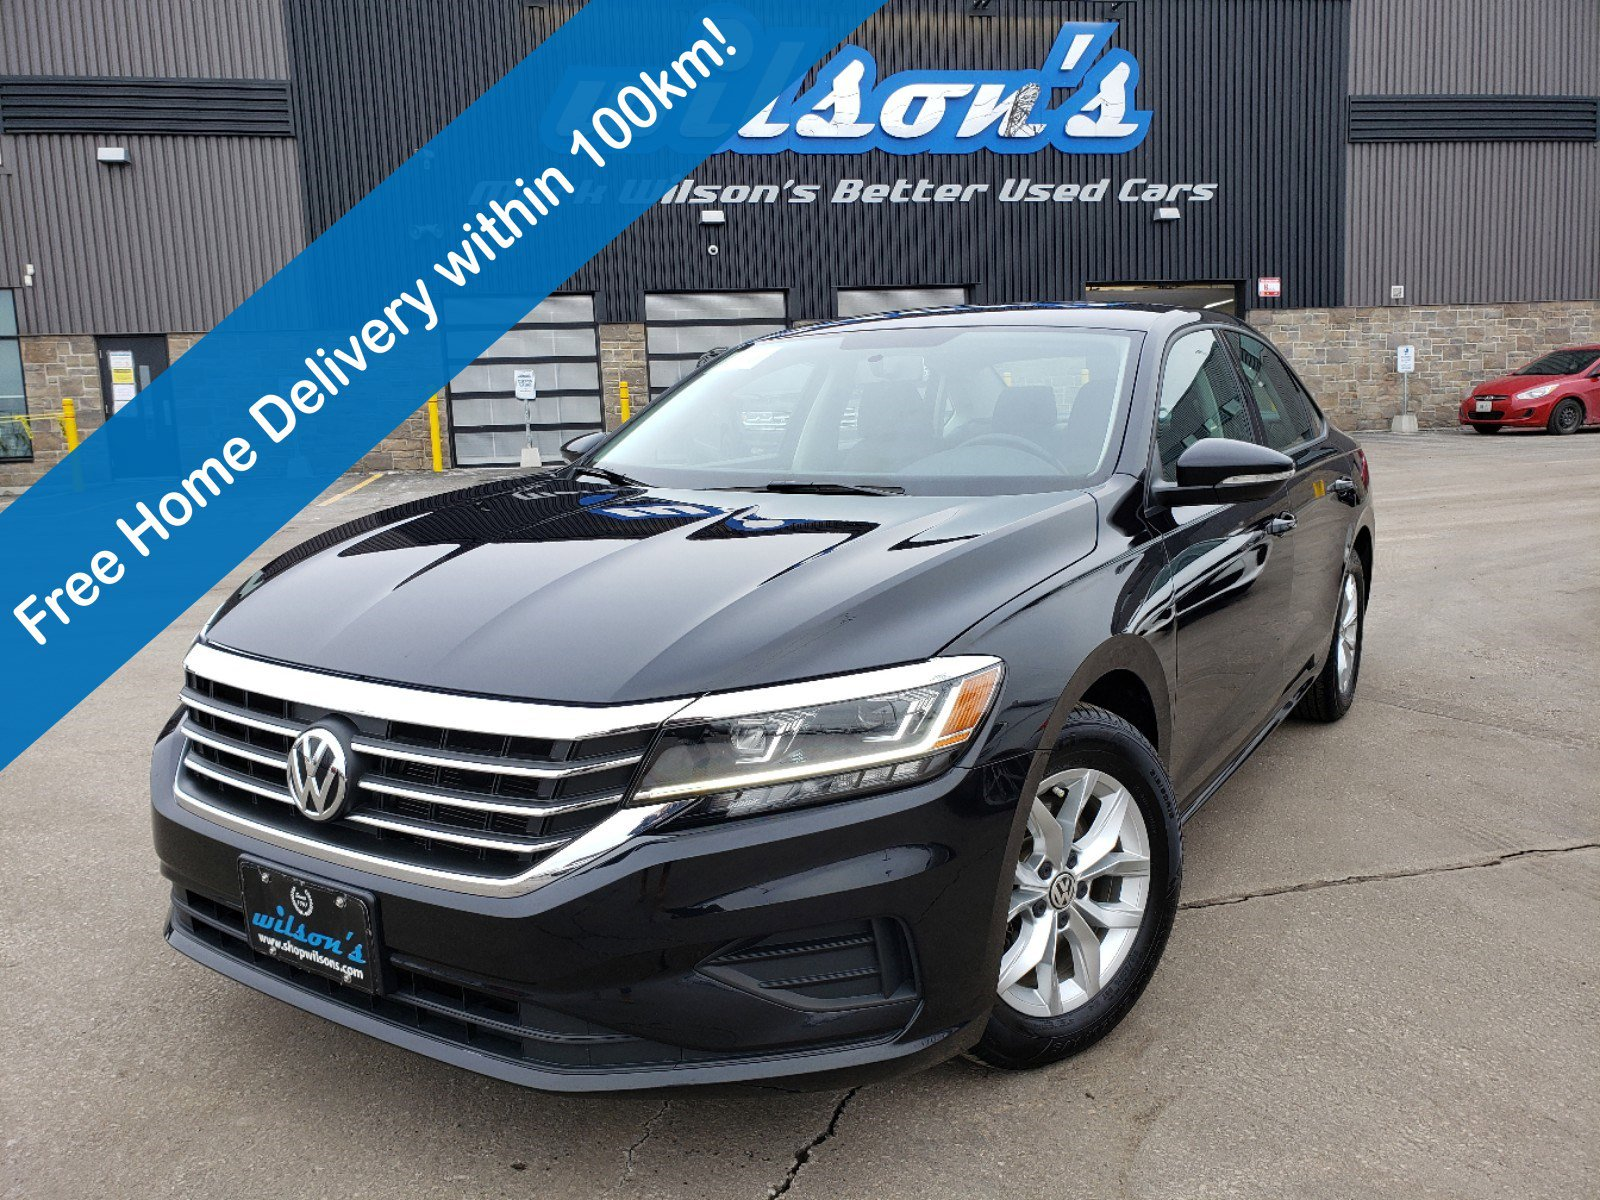 Certified Pre-Owned 2020 Volkswagen Passat Comfortline, Android Auto + Apple CarPlay, Remote Start, Headed Seats, Alloys Wheels & More!